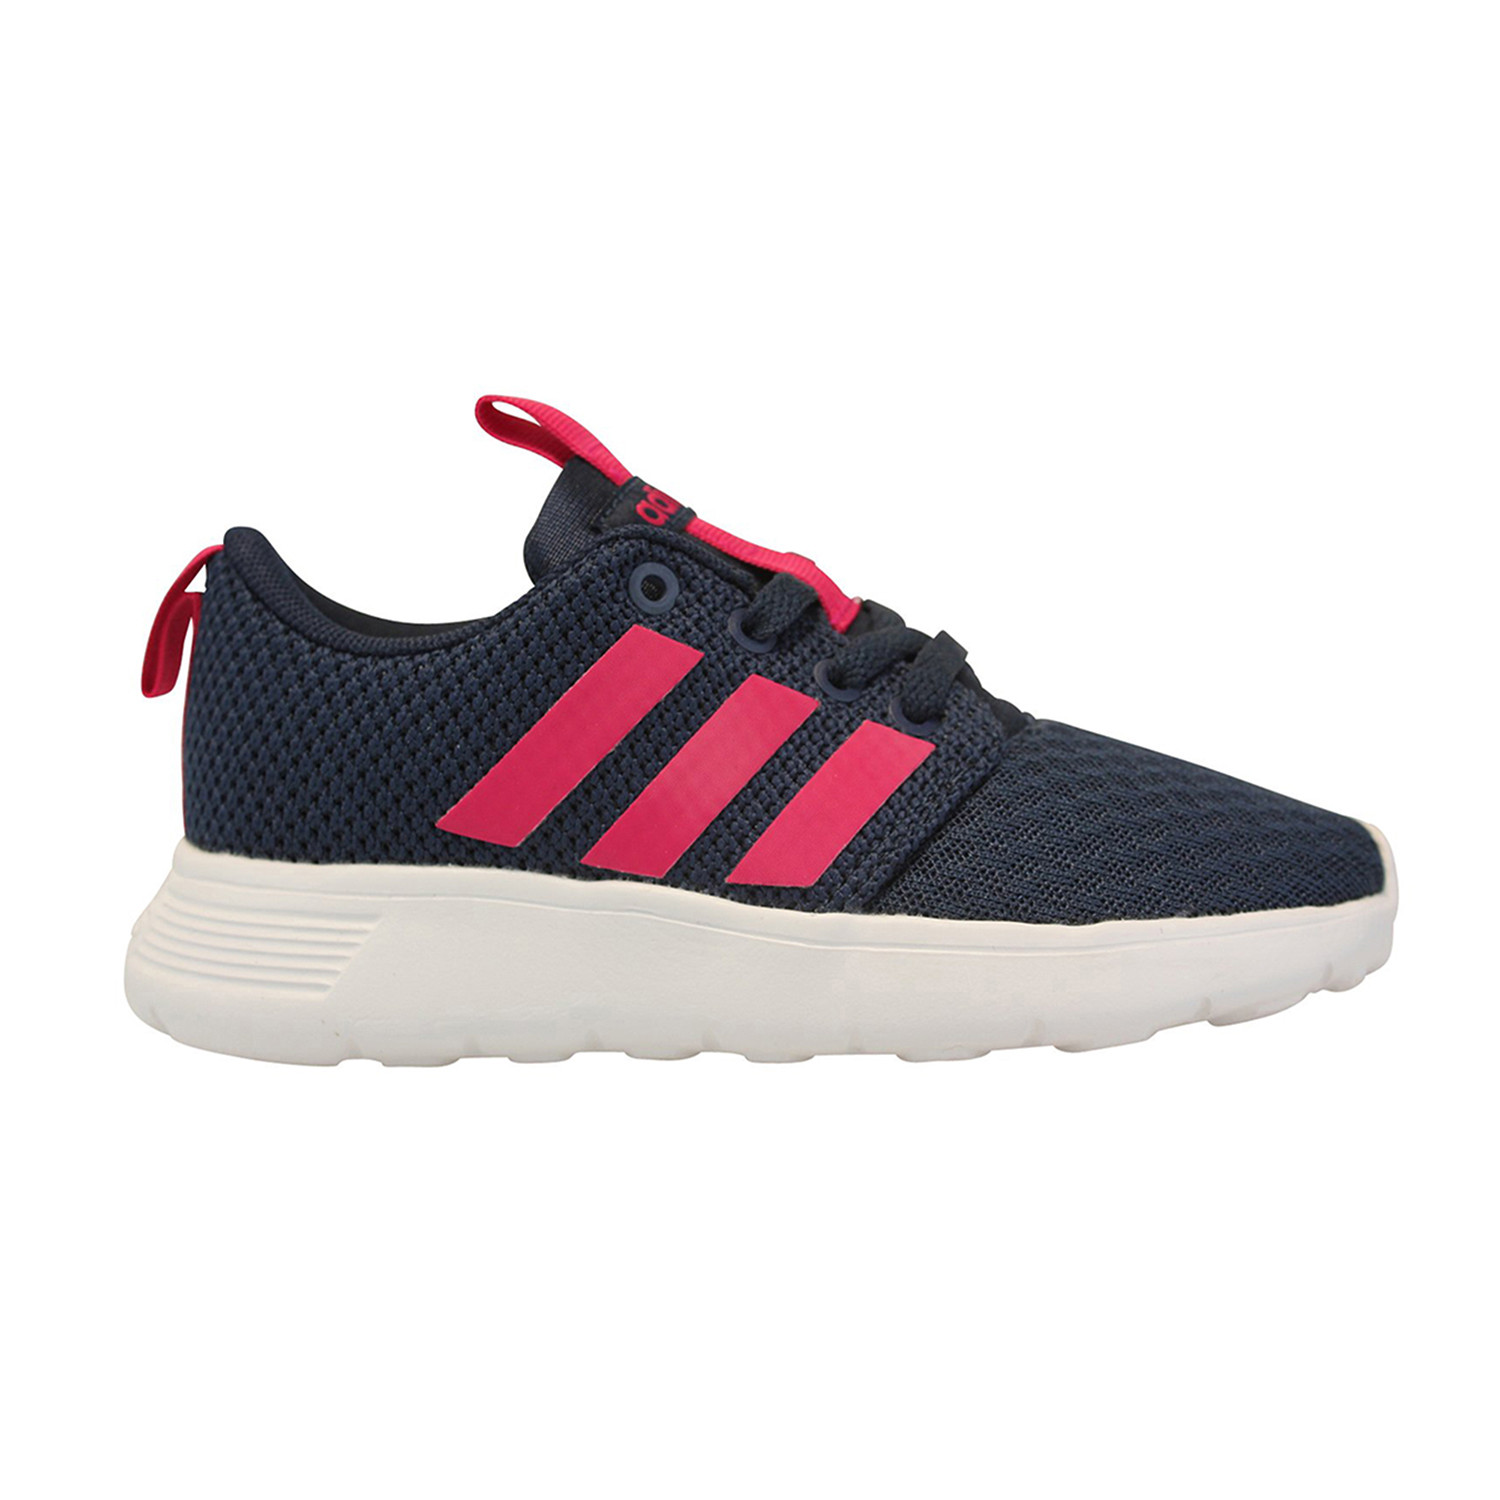 c1dfb3ed9fb86 Swifty K Chaussure Fille ADIDAS BLEU pas cher - Baskets basses fille ...